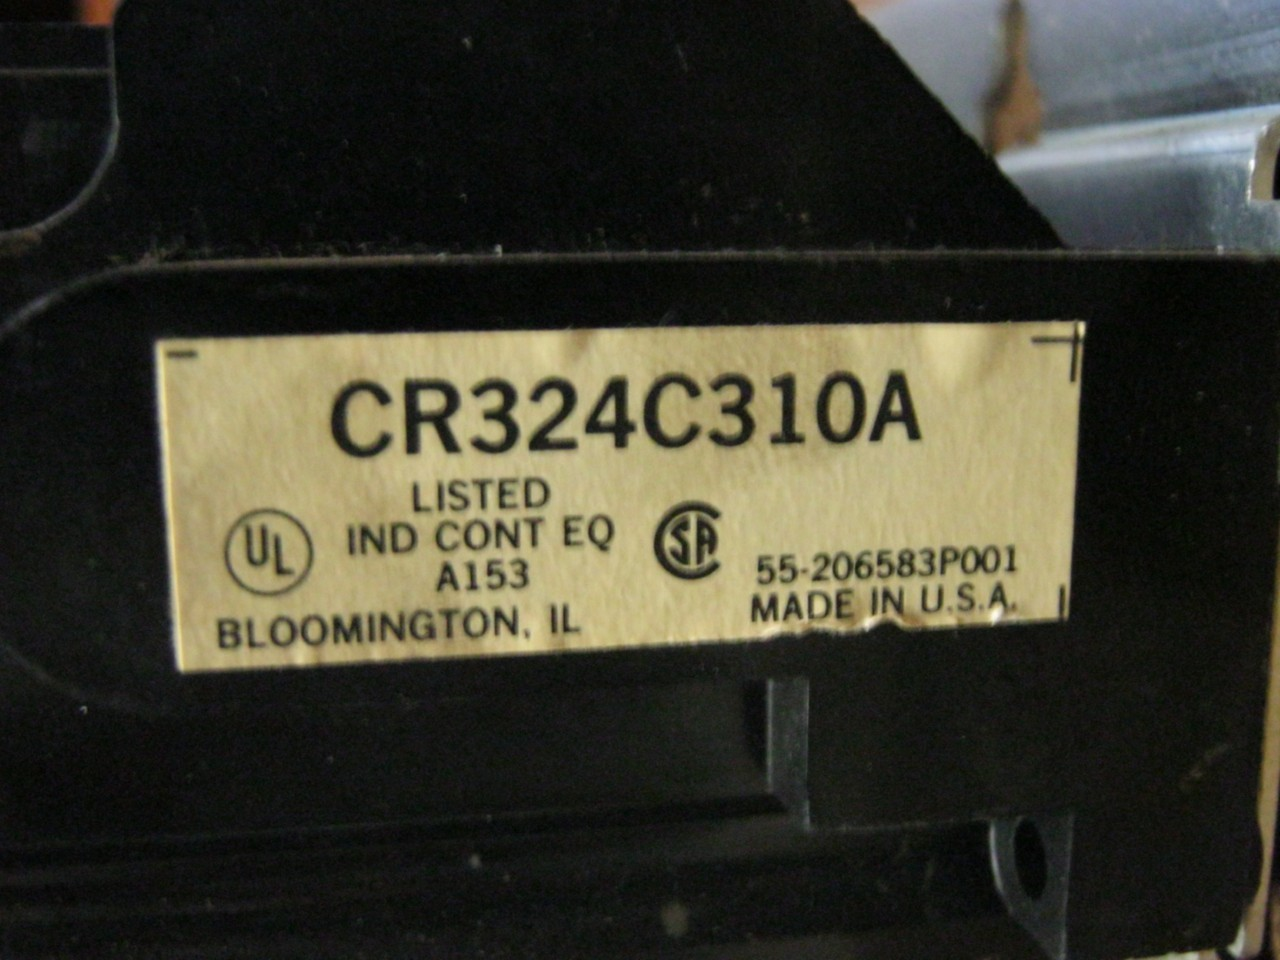 General Electric Overload Relay CRCA EBay - Working principle of overload relay